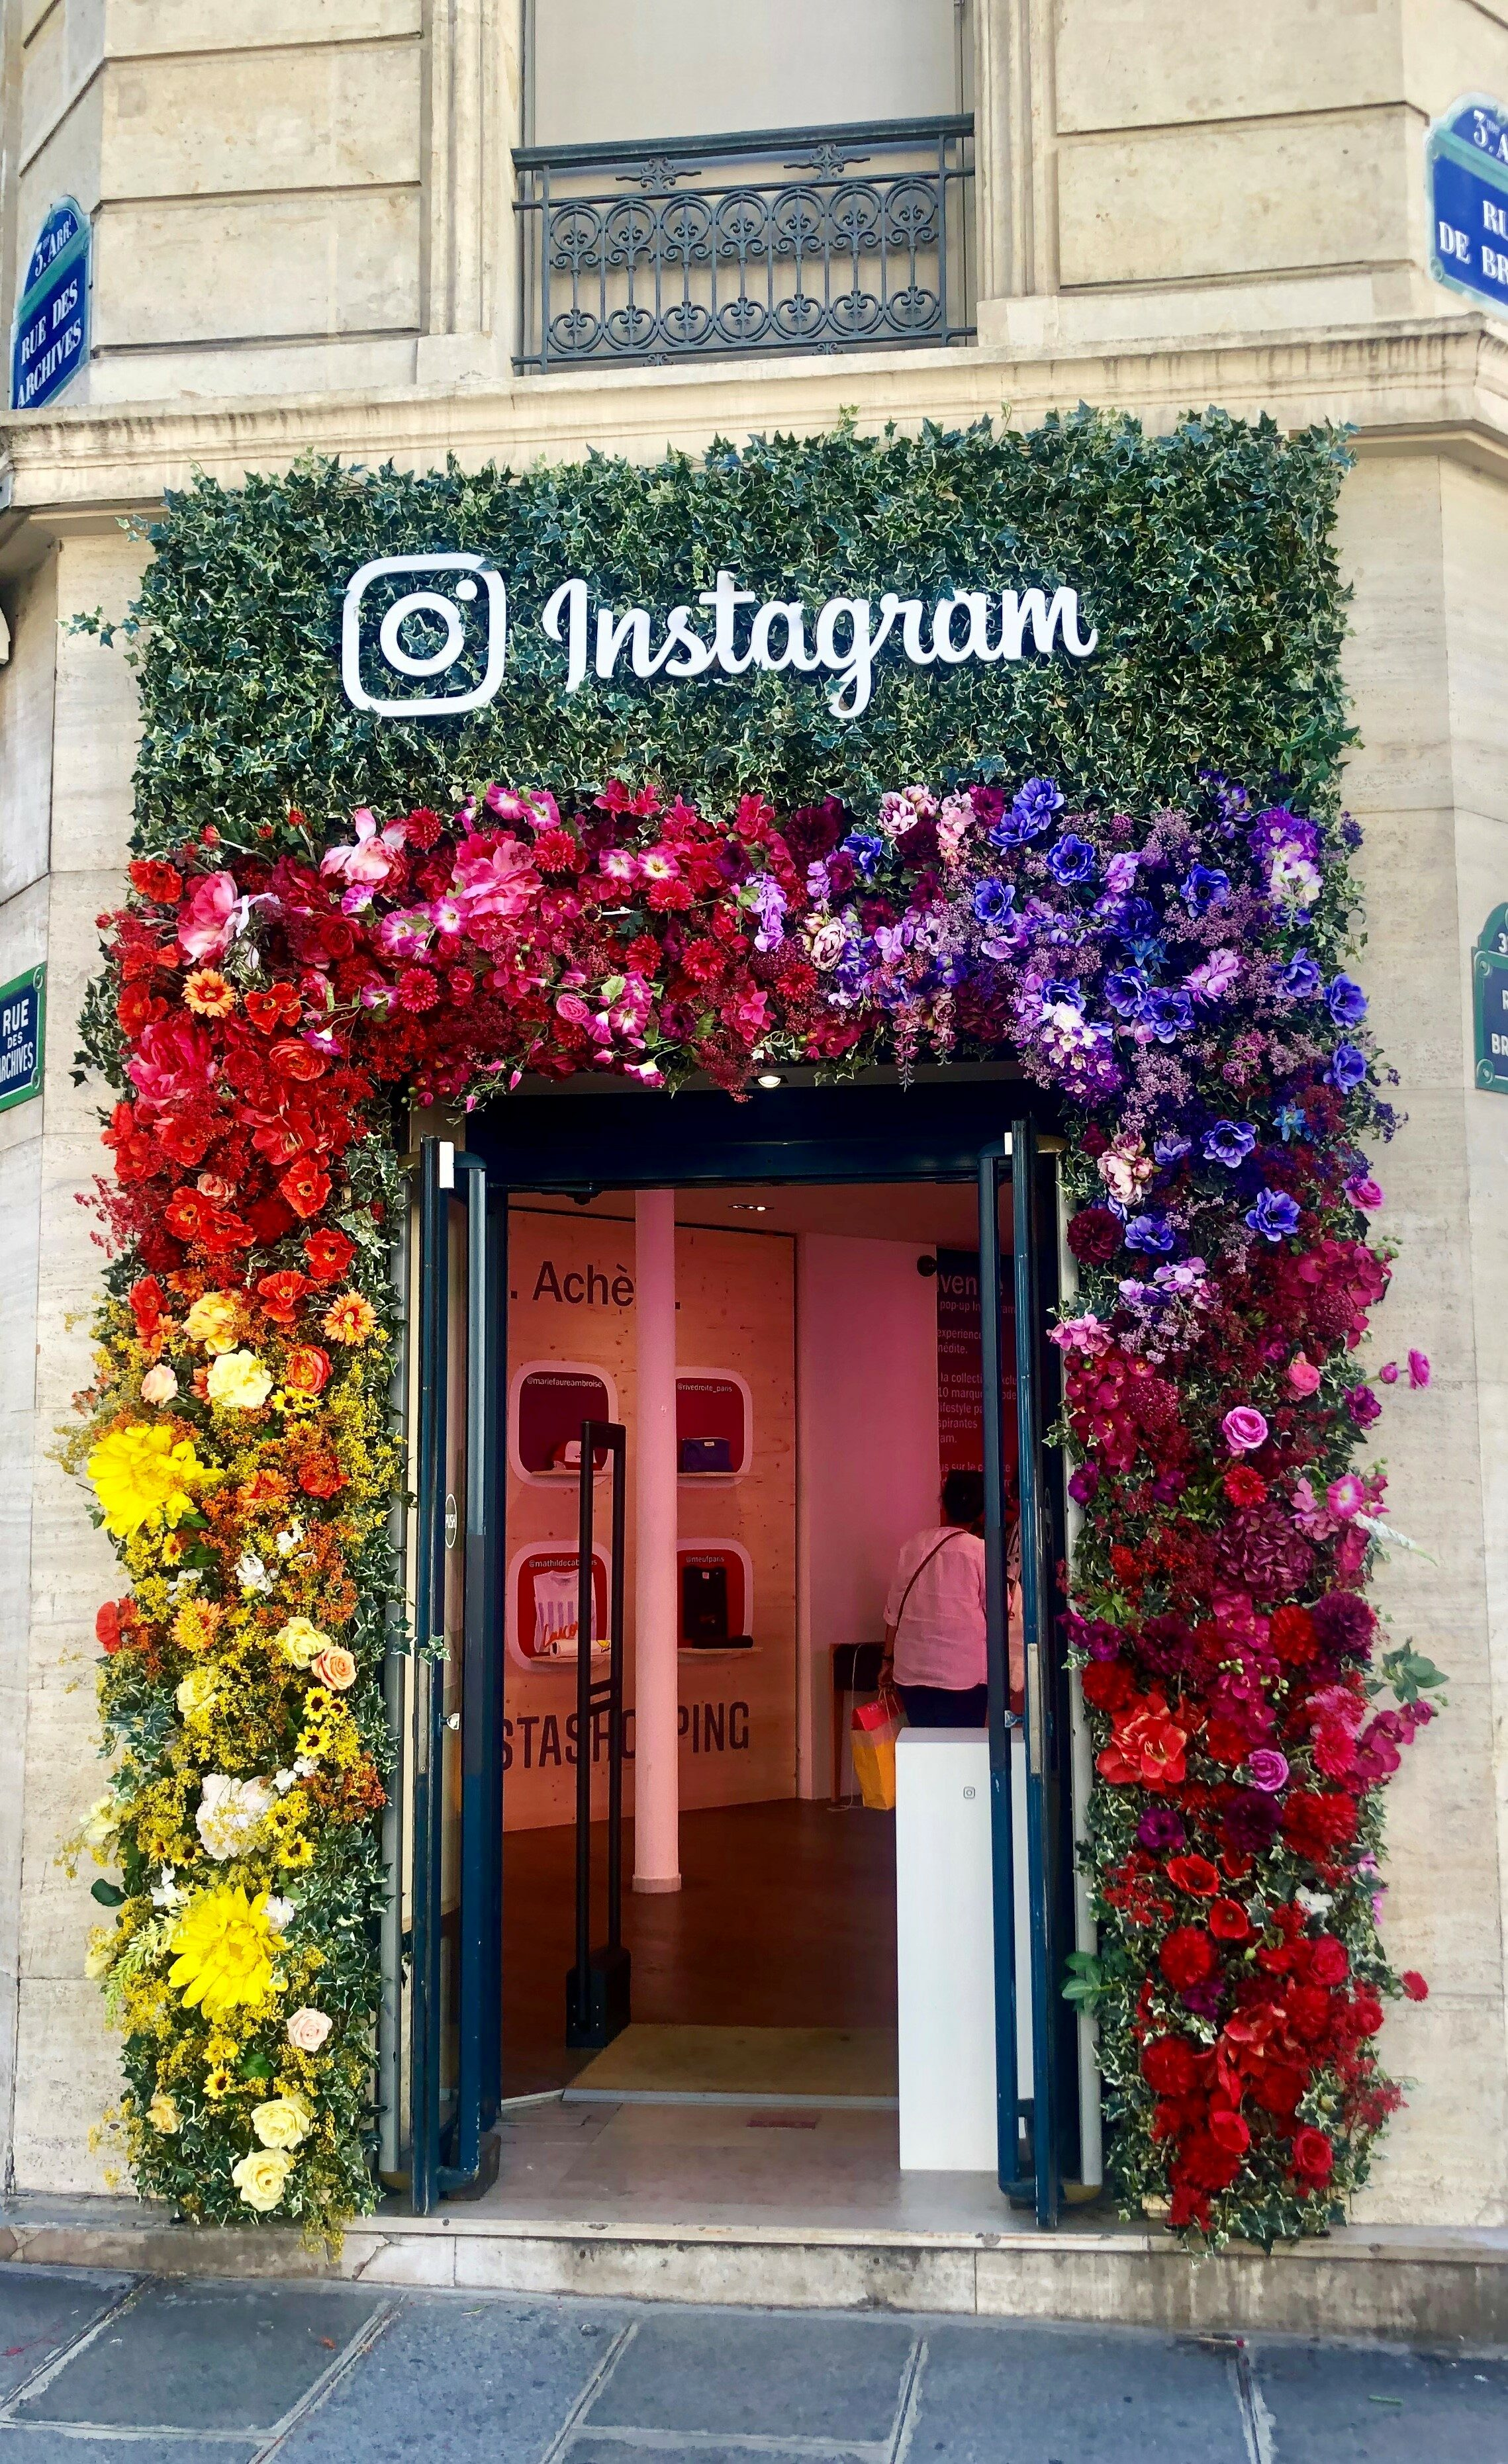 Instagram boutique arrive à Paris !